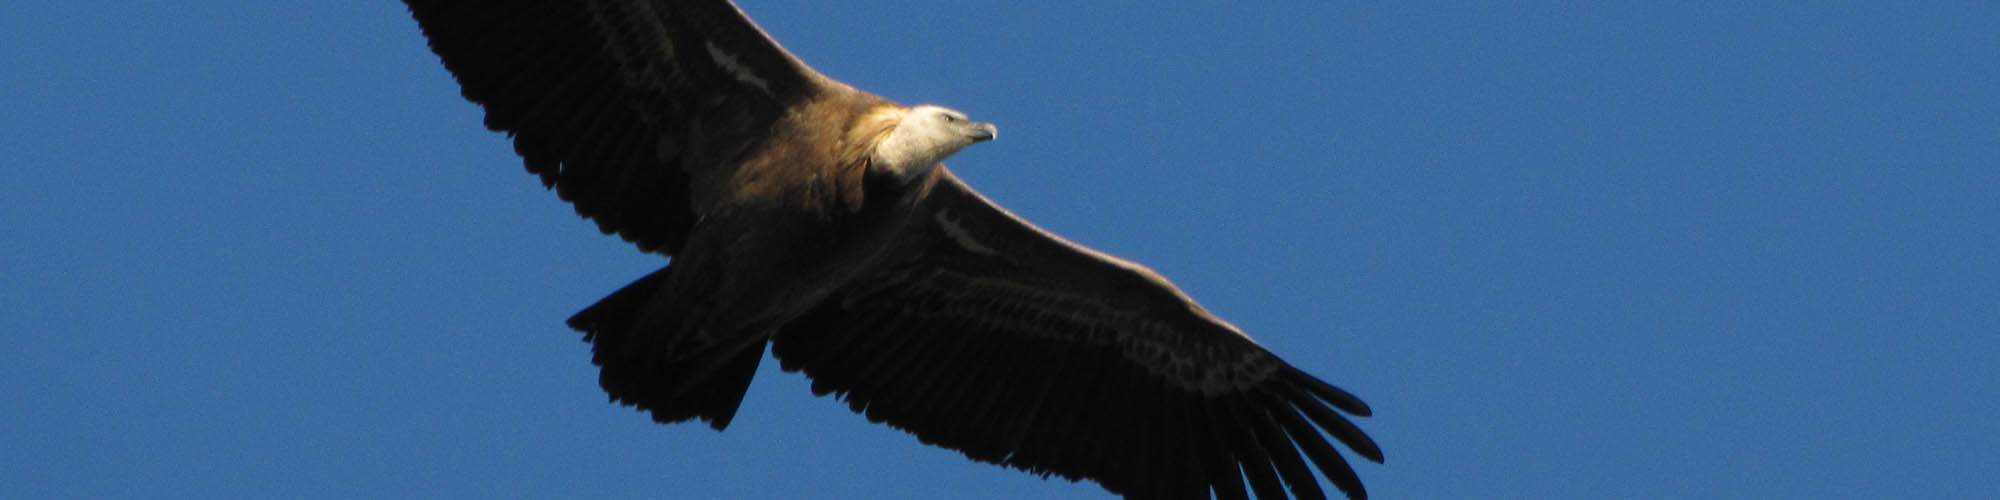 The Local Expert - The Griffon Vultures